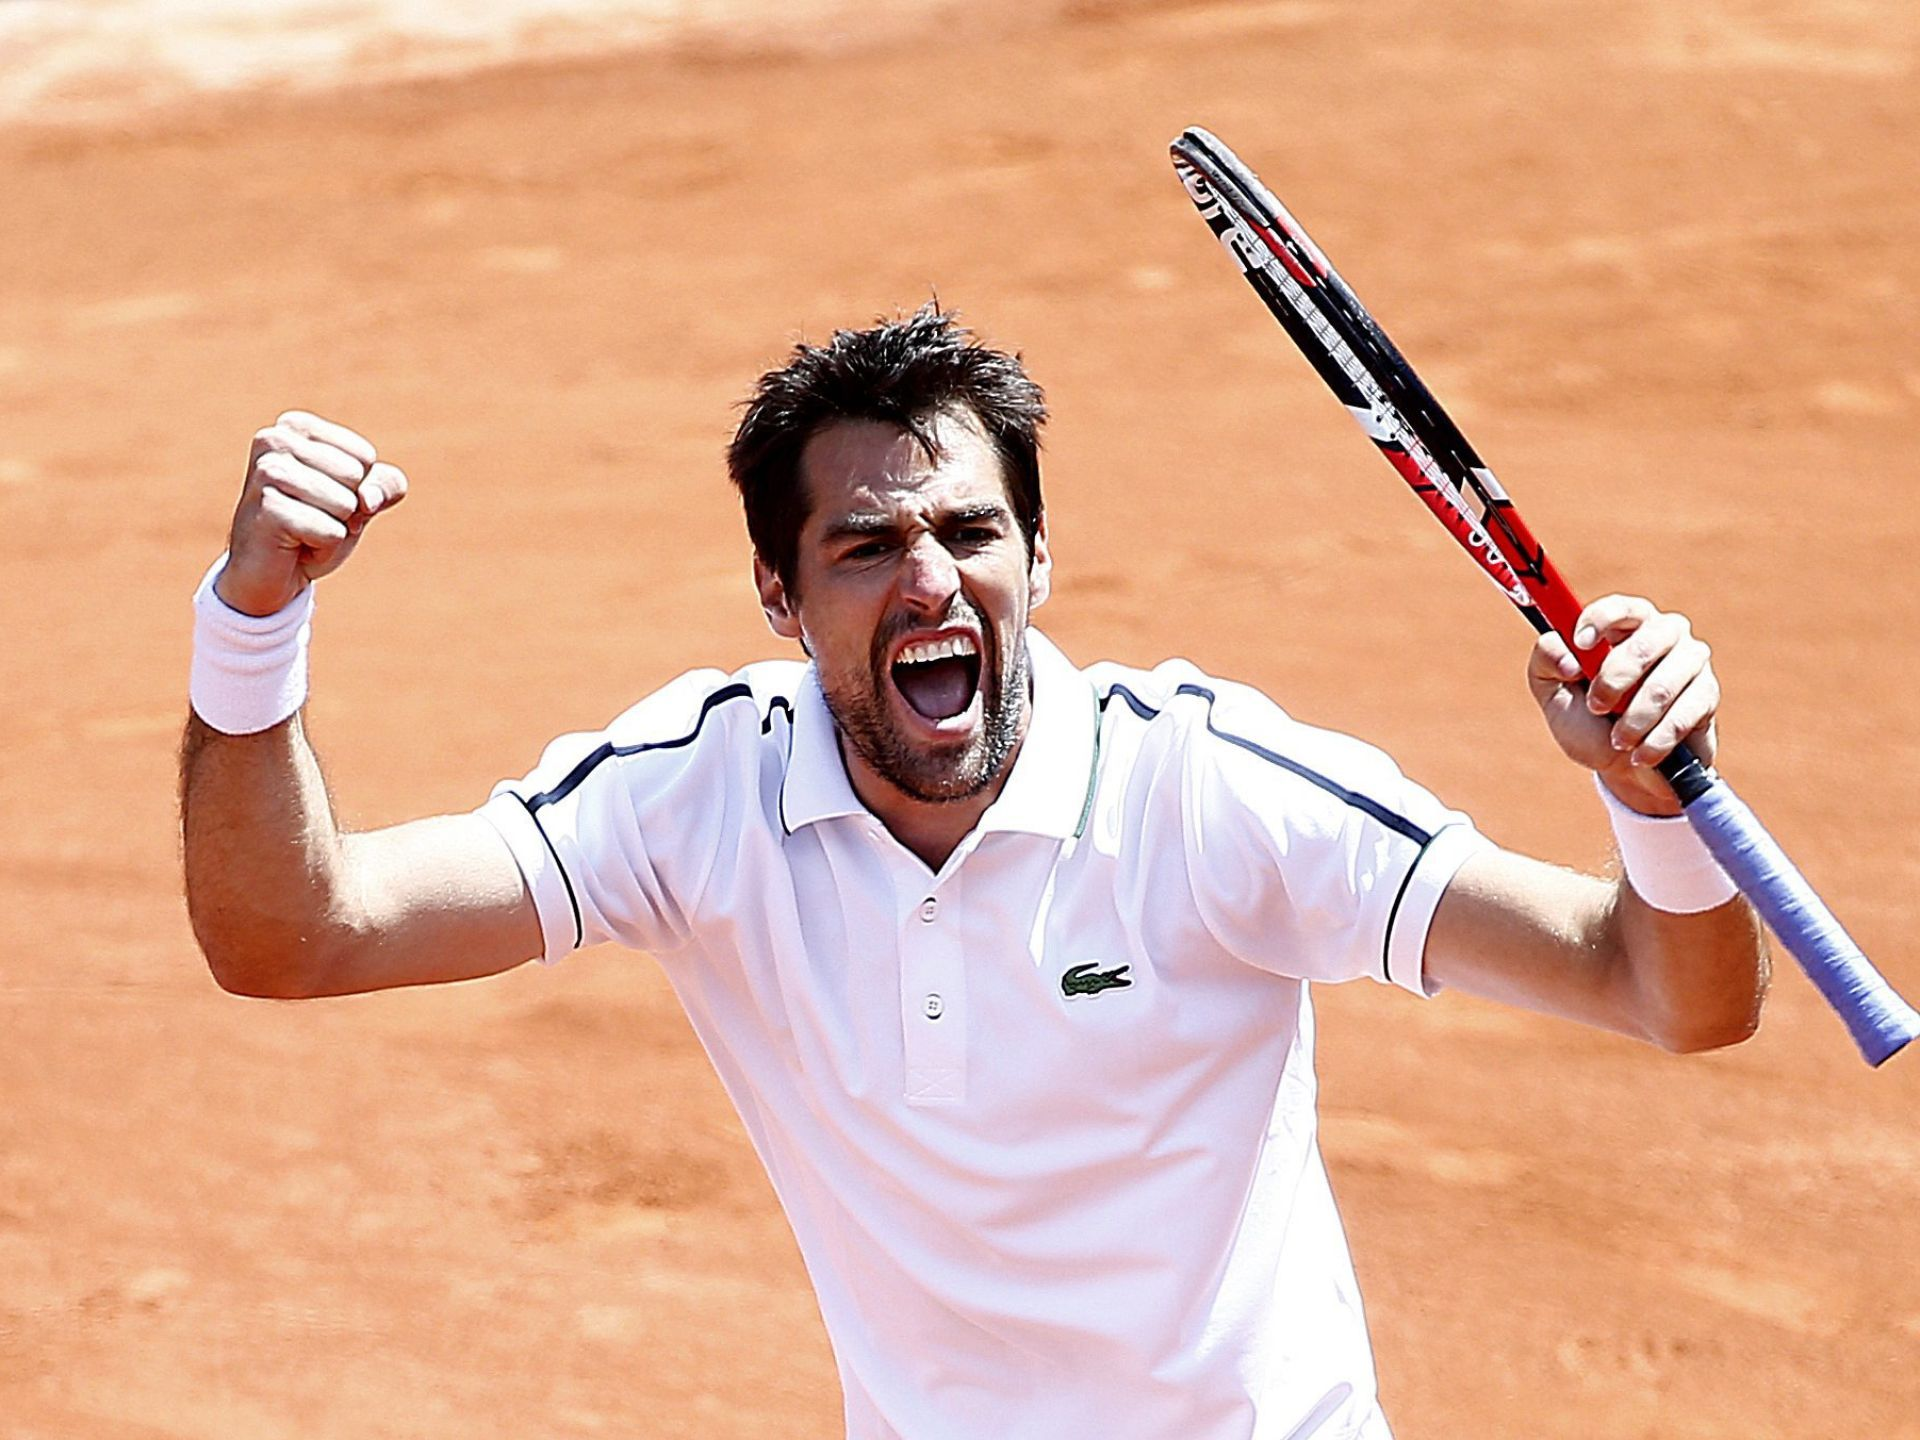 Jeremy Chardy of France celebrates after winning against David Goffin in the French Open.  Ian Langsdon, EPA